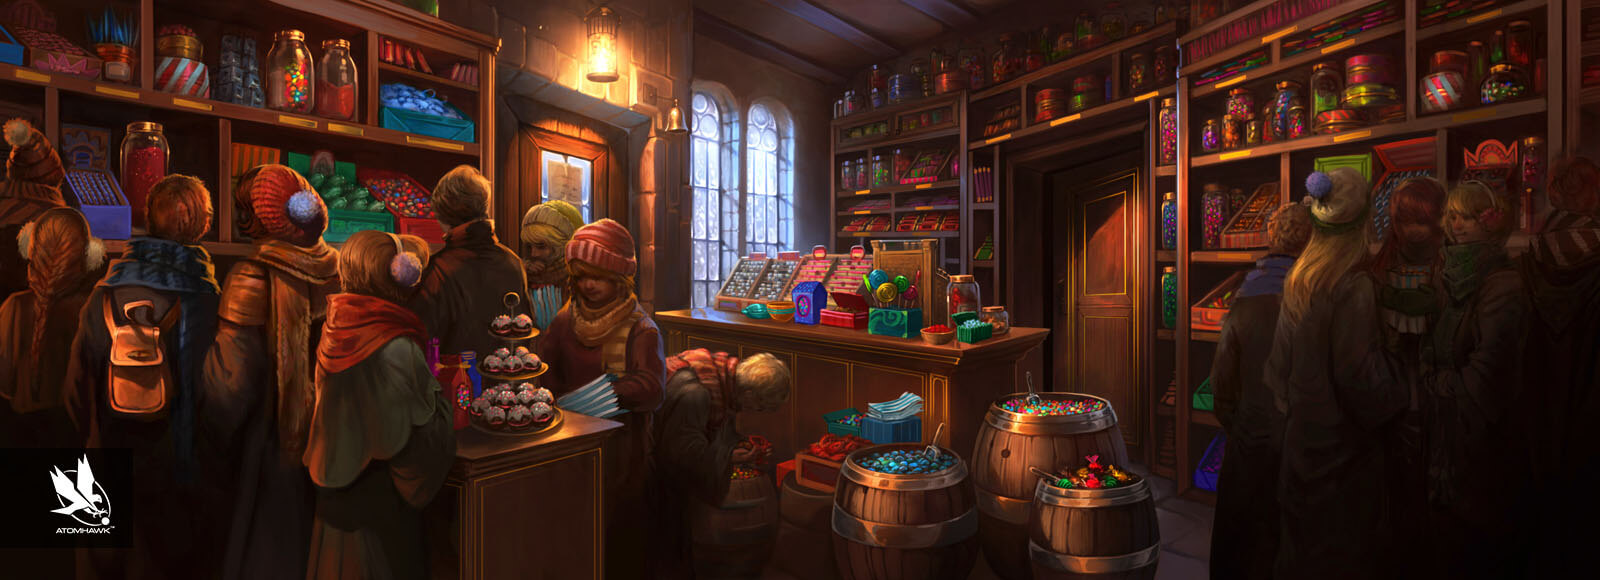 Pottermore - Concept Art - Honeydukes